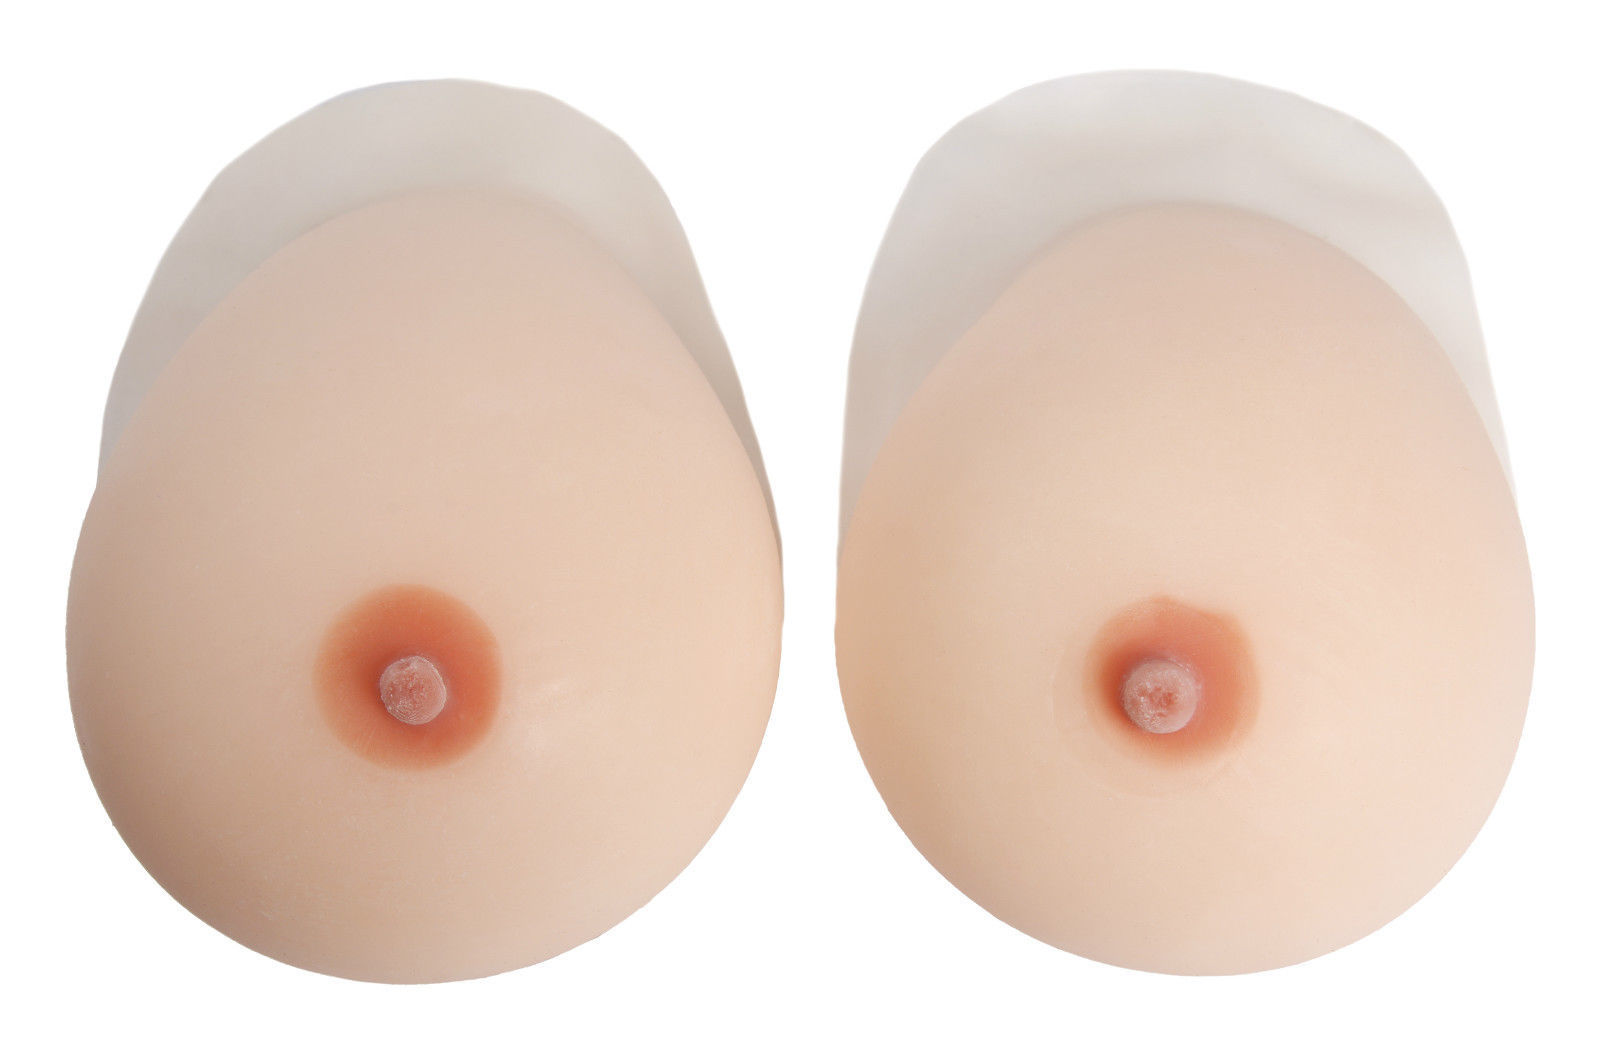 Primary image for Isabella Real Tear Drop Silicone Breast Form Cross dresser Sz 9(3XL)